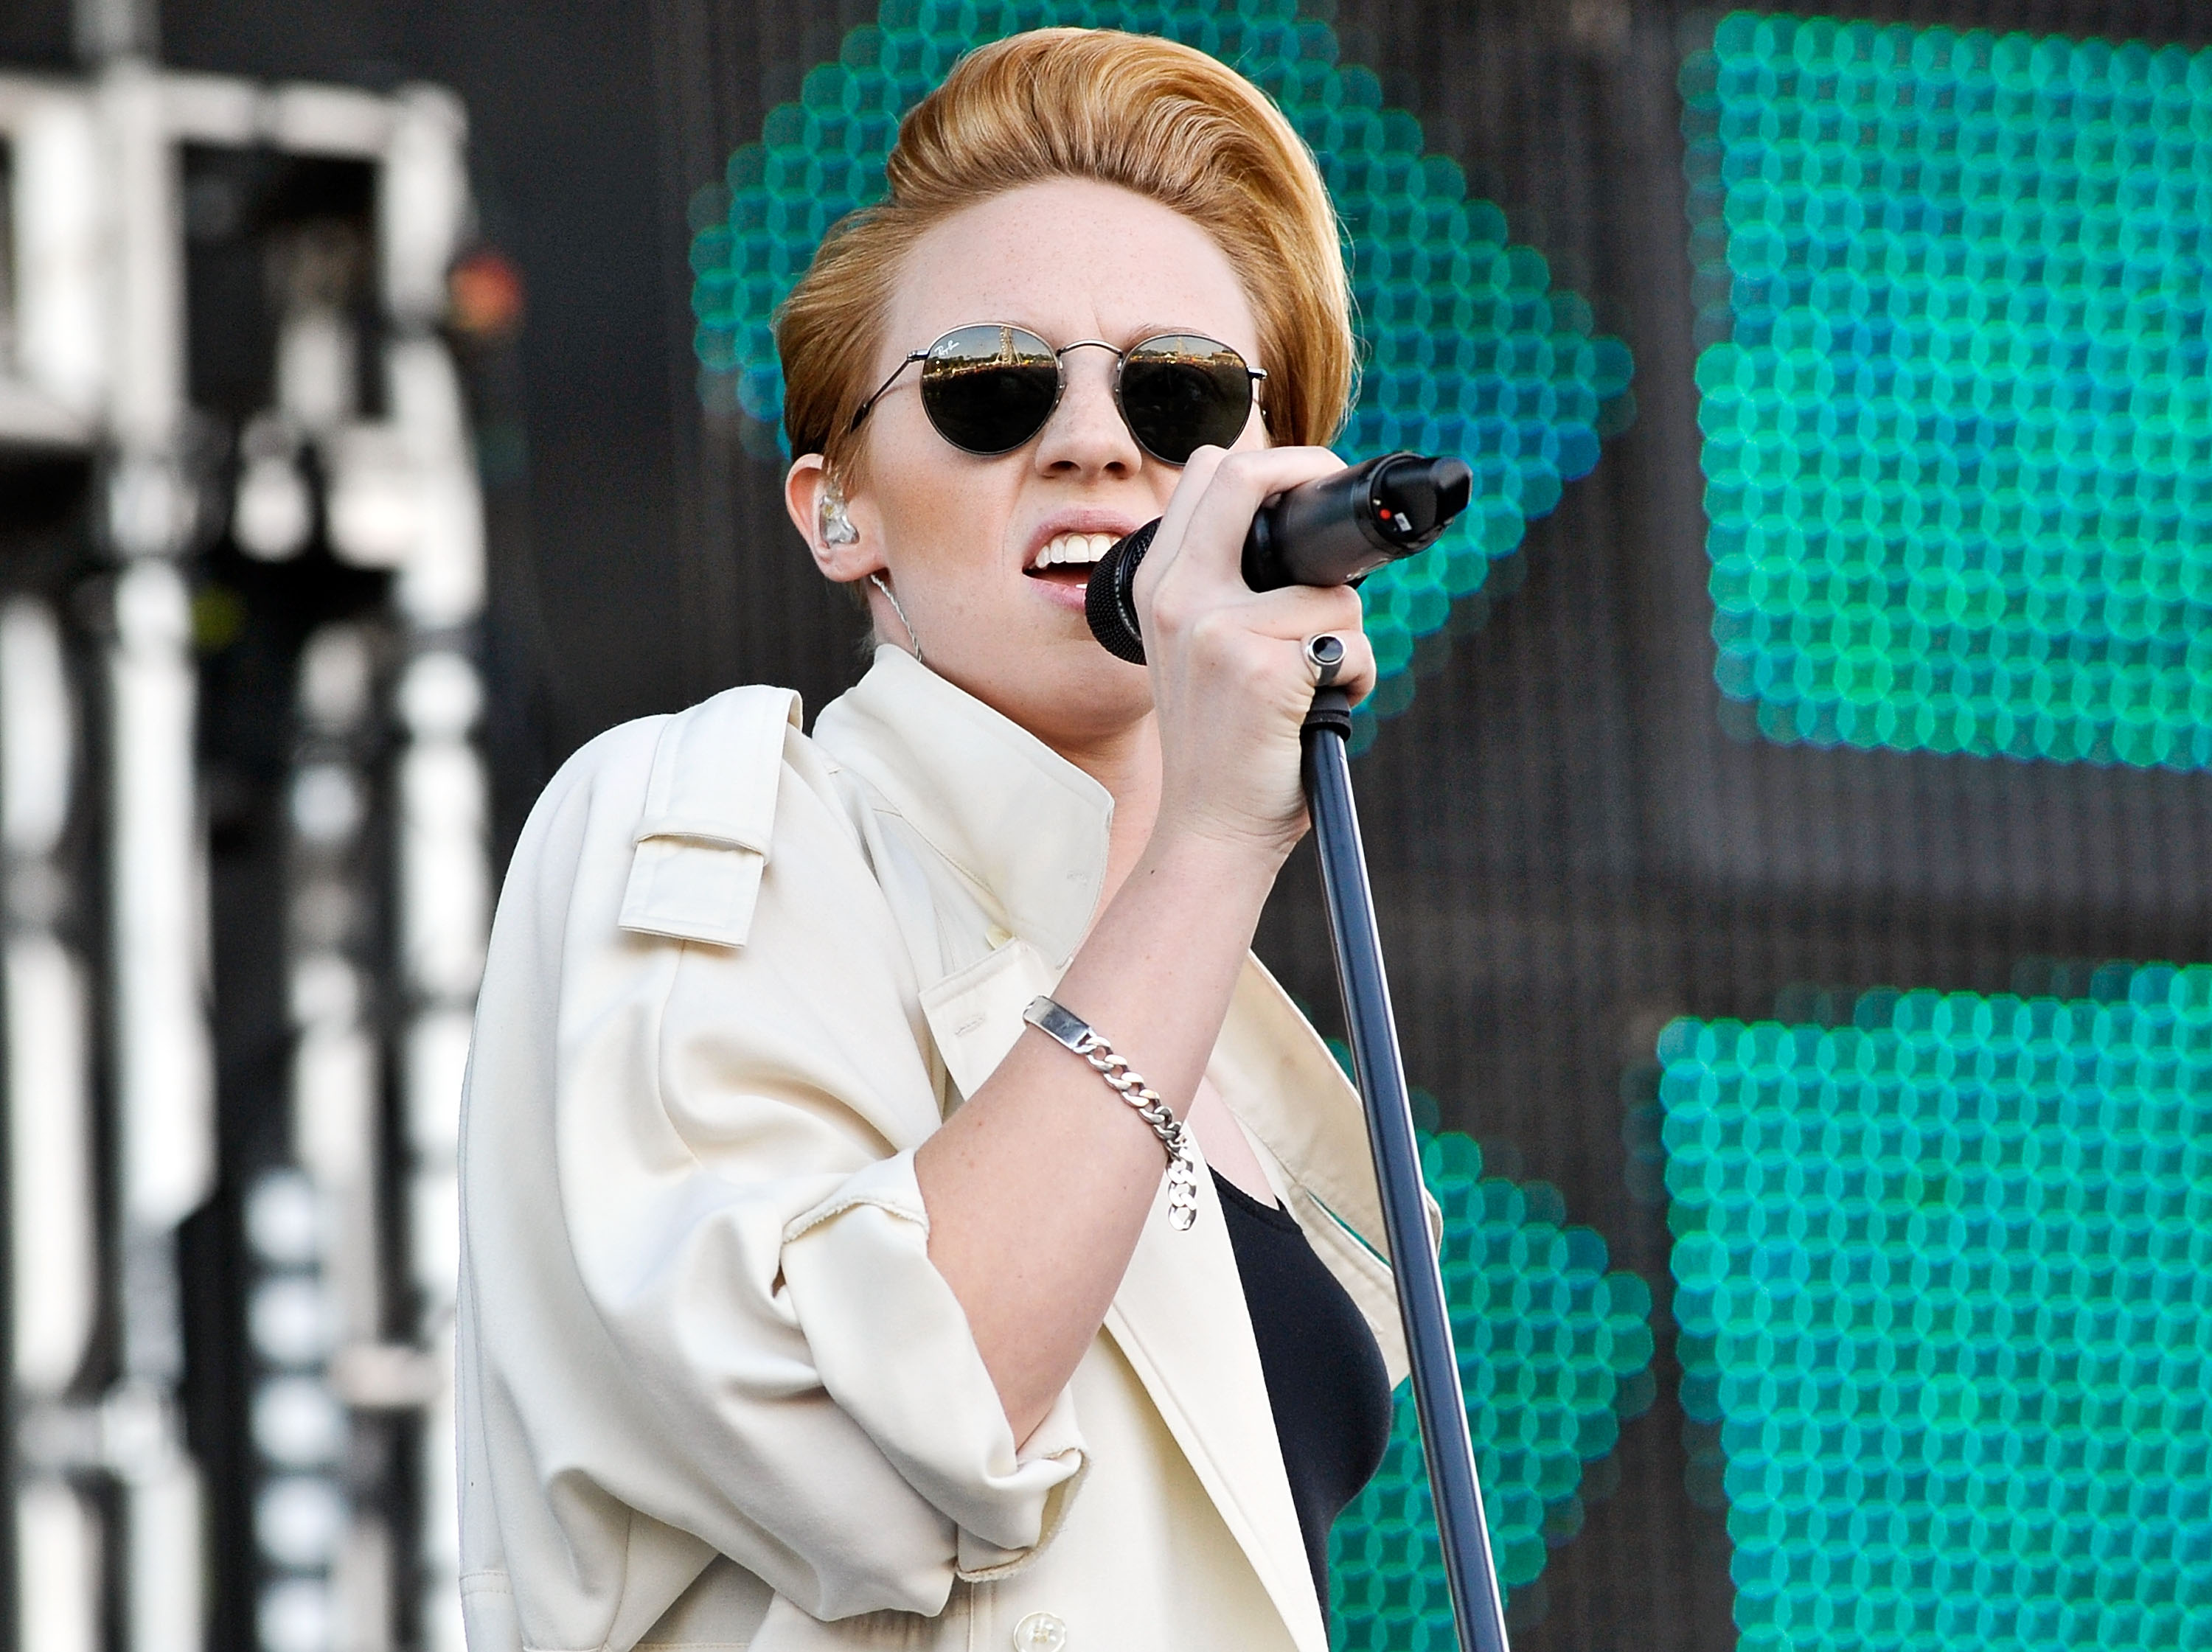 Elly Jackson of La Roux performs at Electric Daisy Carnival in 2013